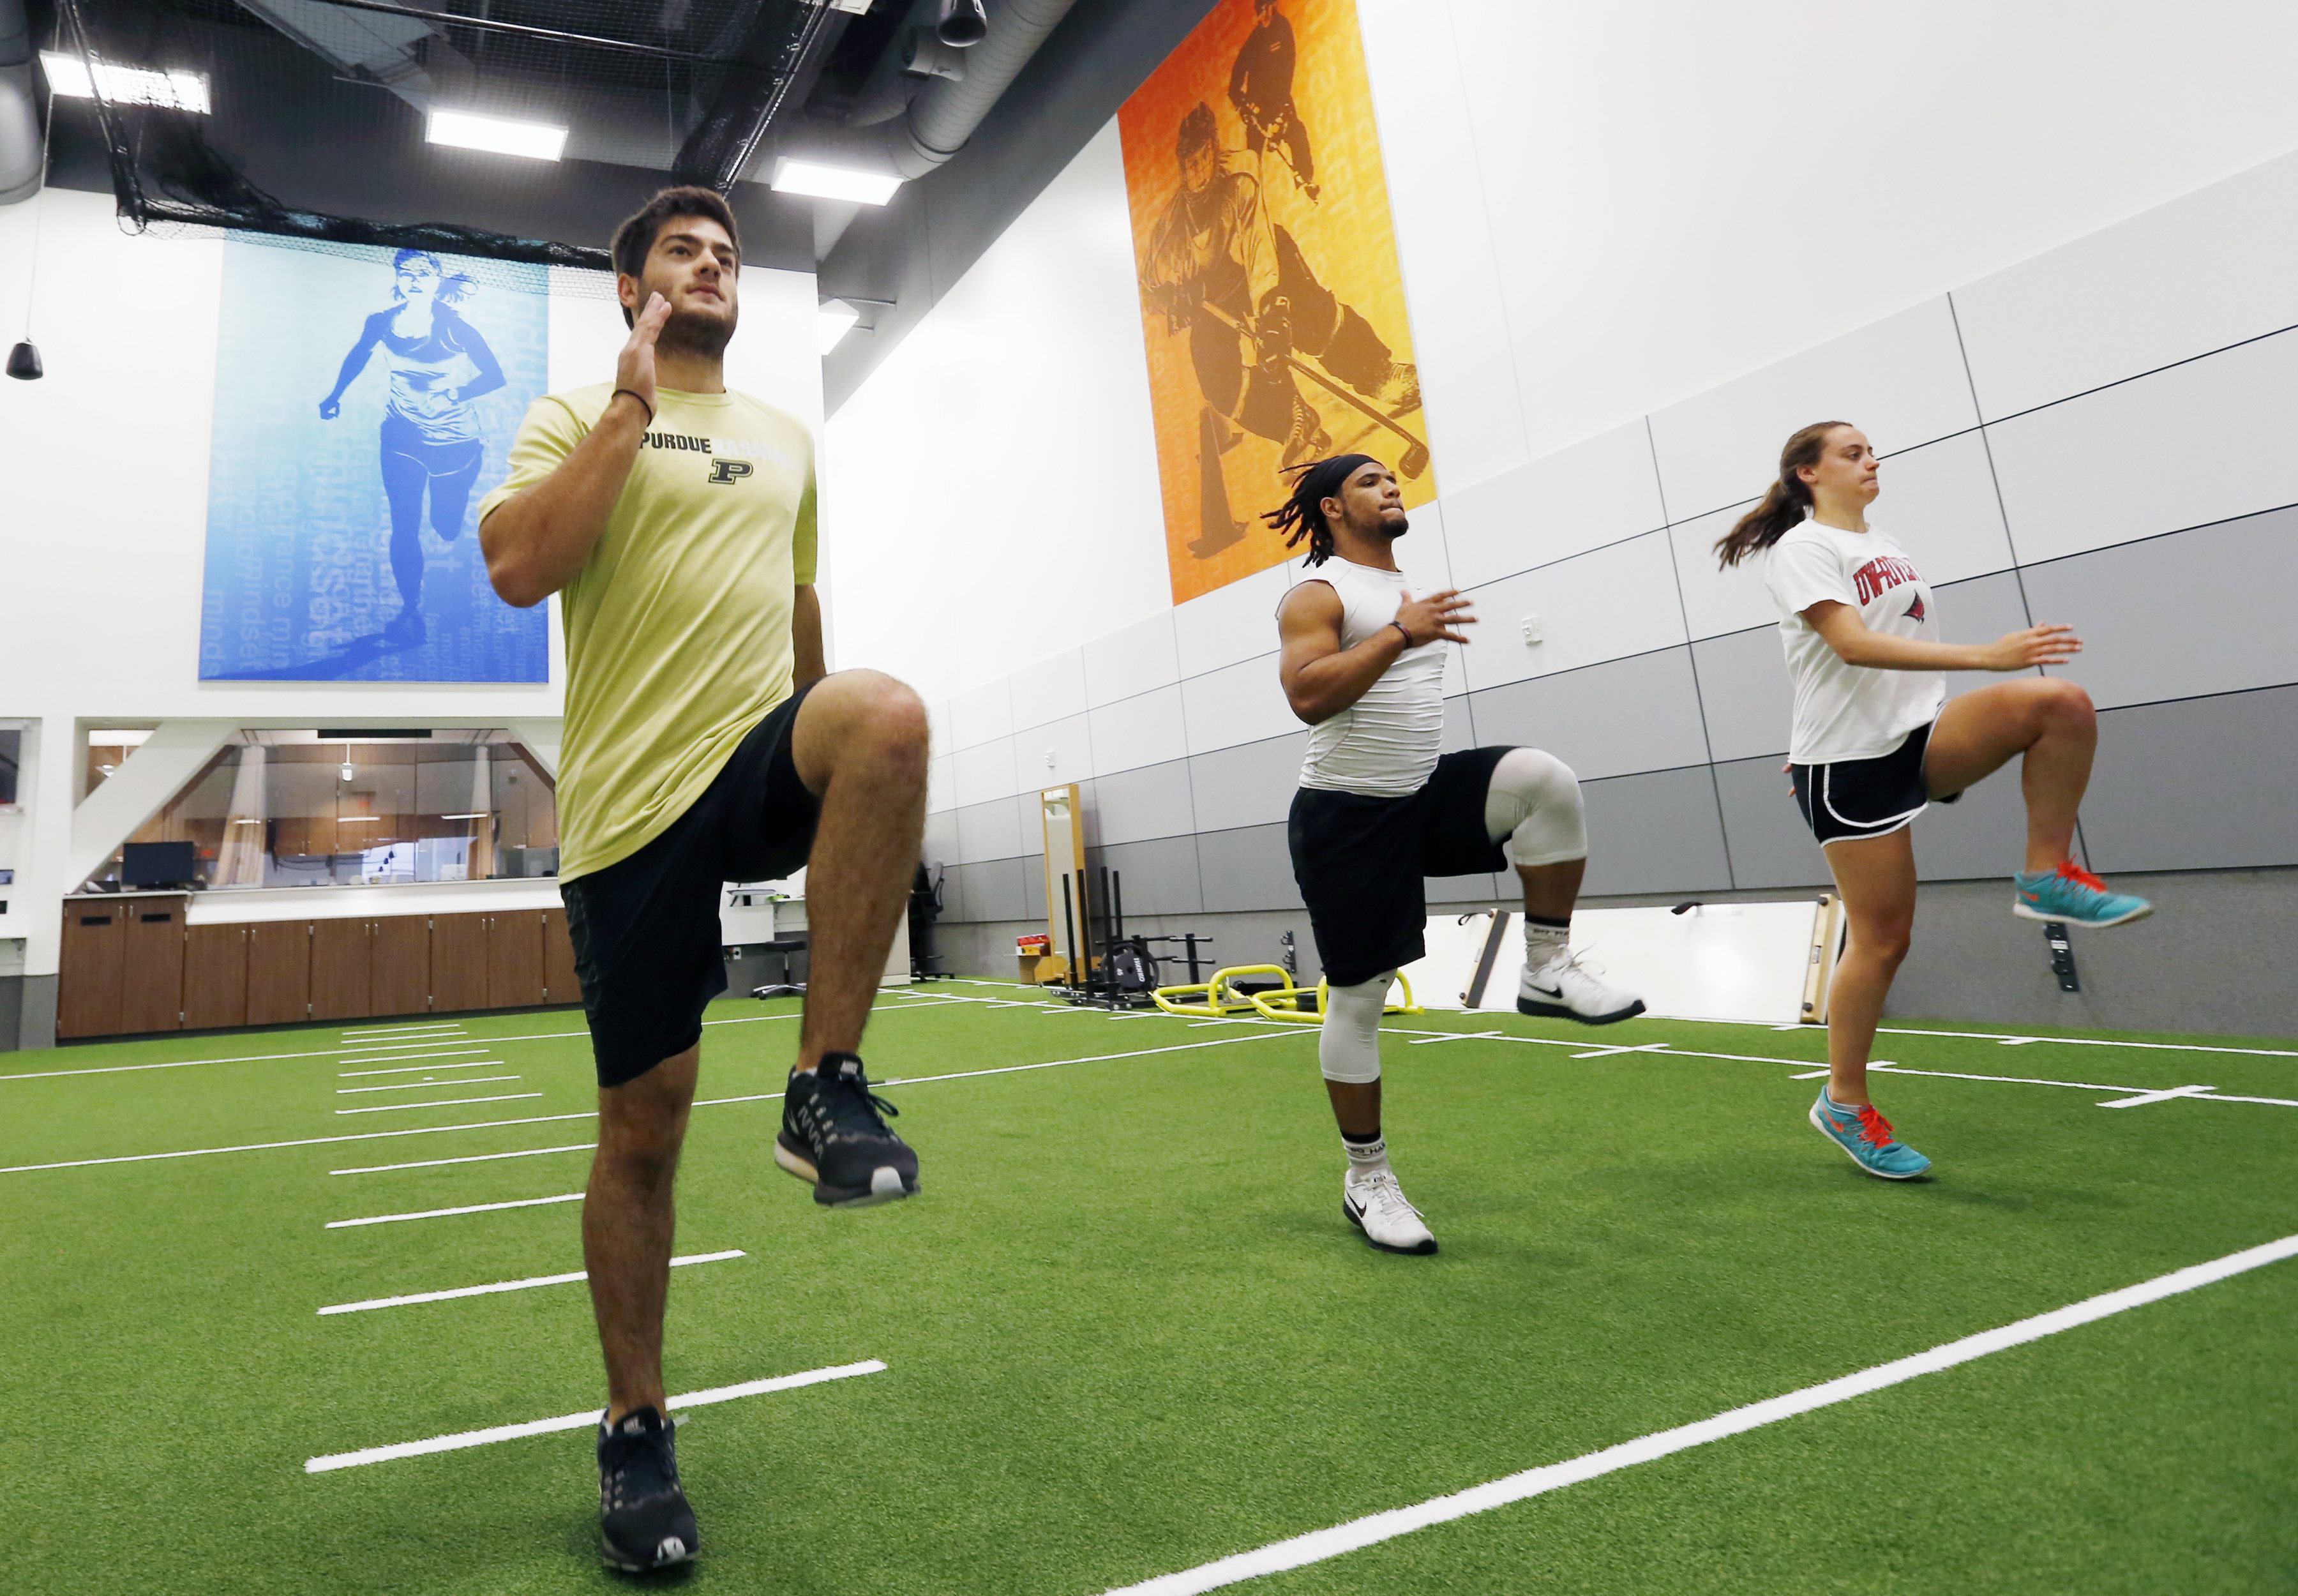 In this July 6, 2016 photo, from left, Stephen Kalina, Jaden Huff and Haley Nielsen go through workouts at the Mayo Clinic in Minneapolis. Mayo's new facility for high-level conditioning with noted performance trainer EXOS isn't just for elite athletes an